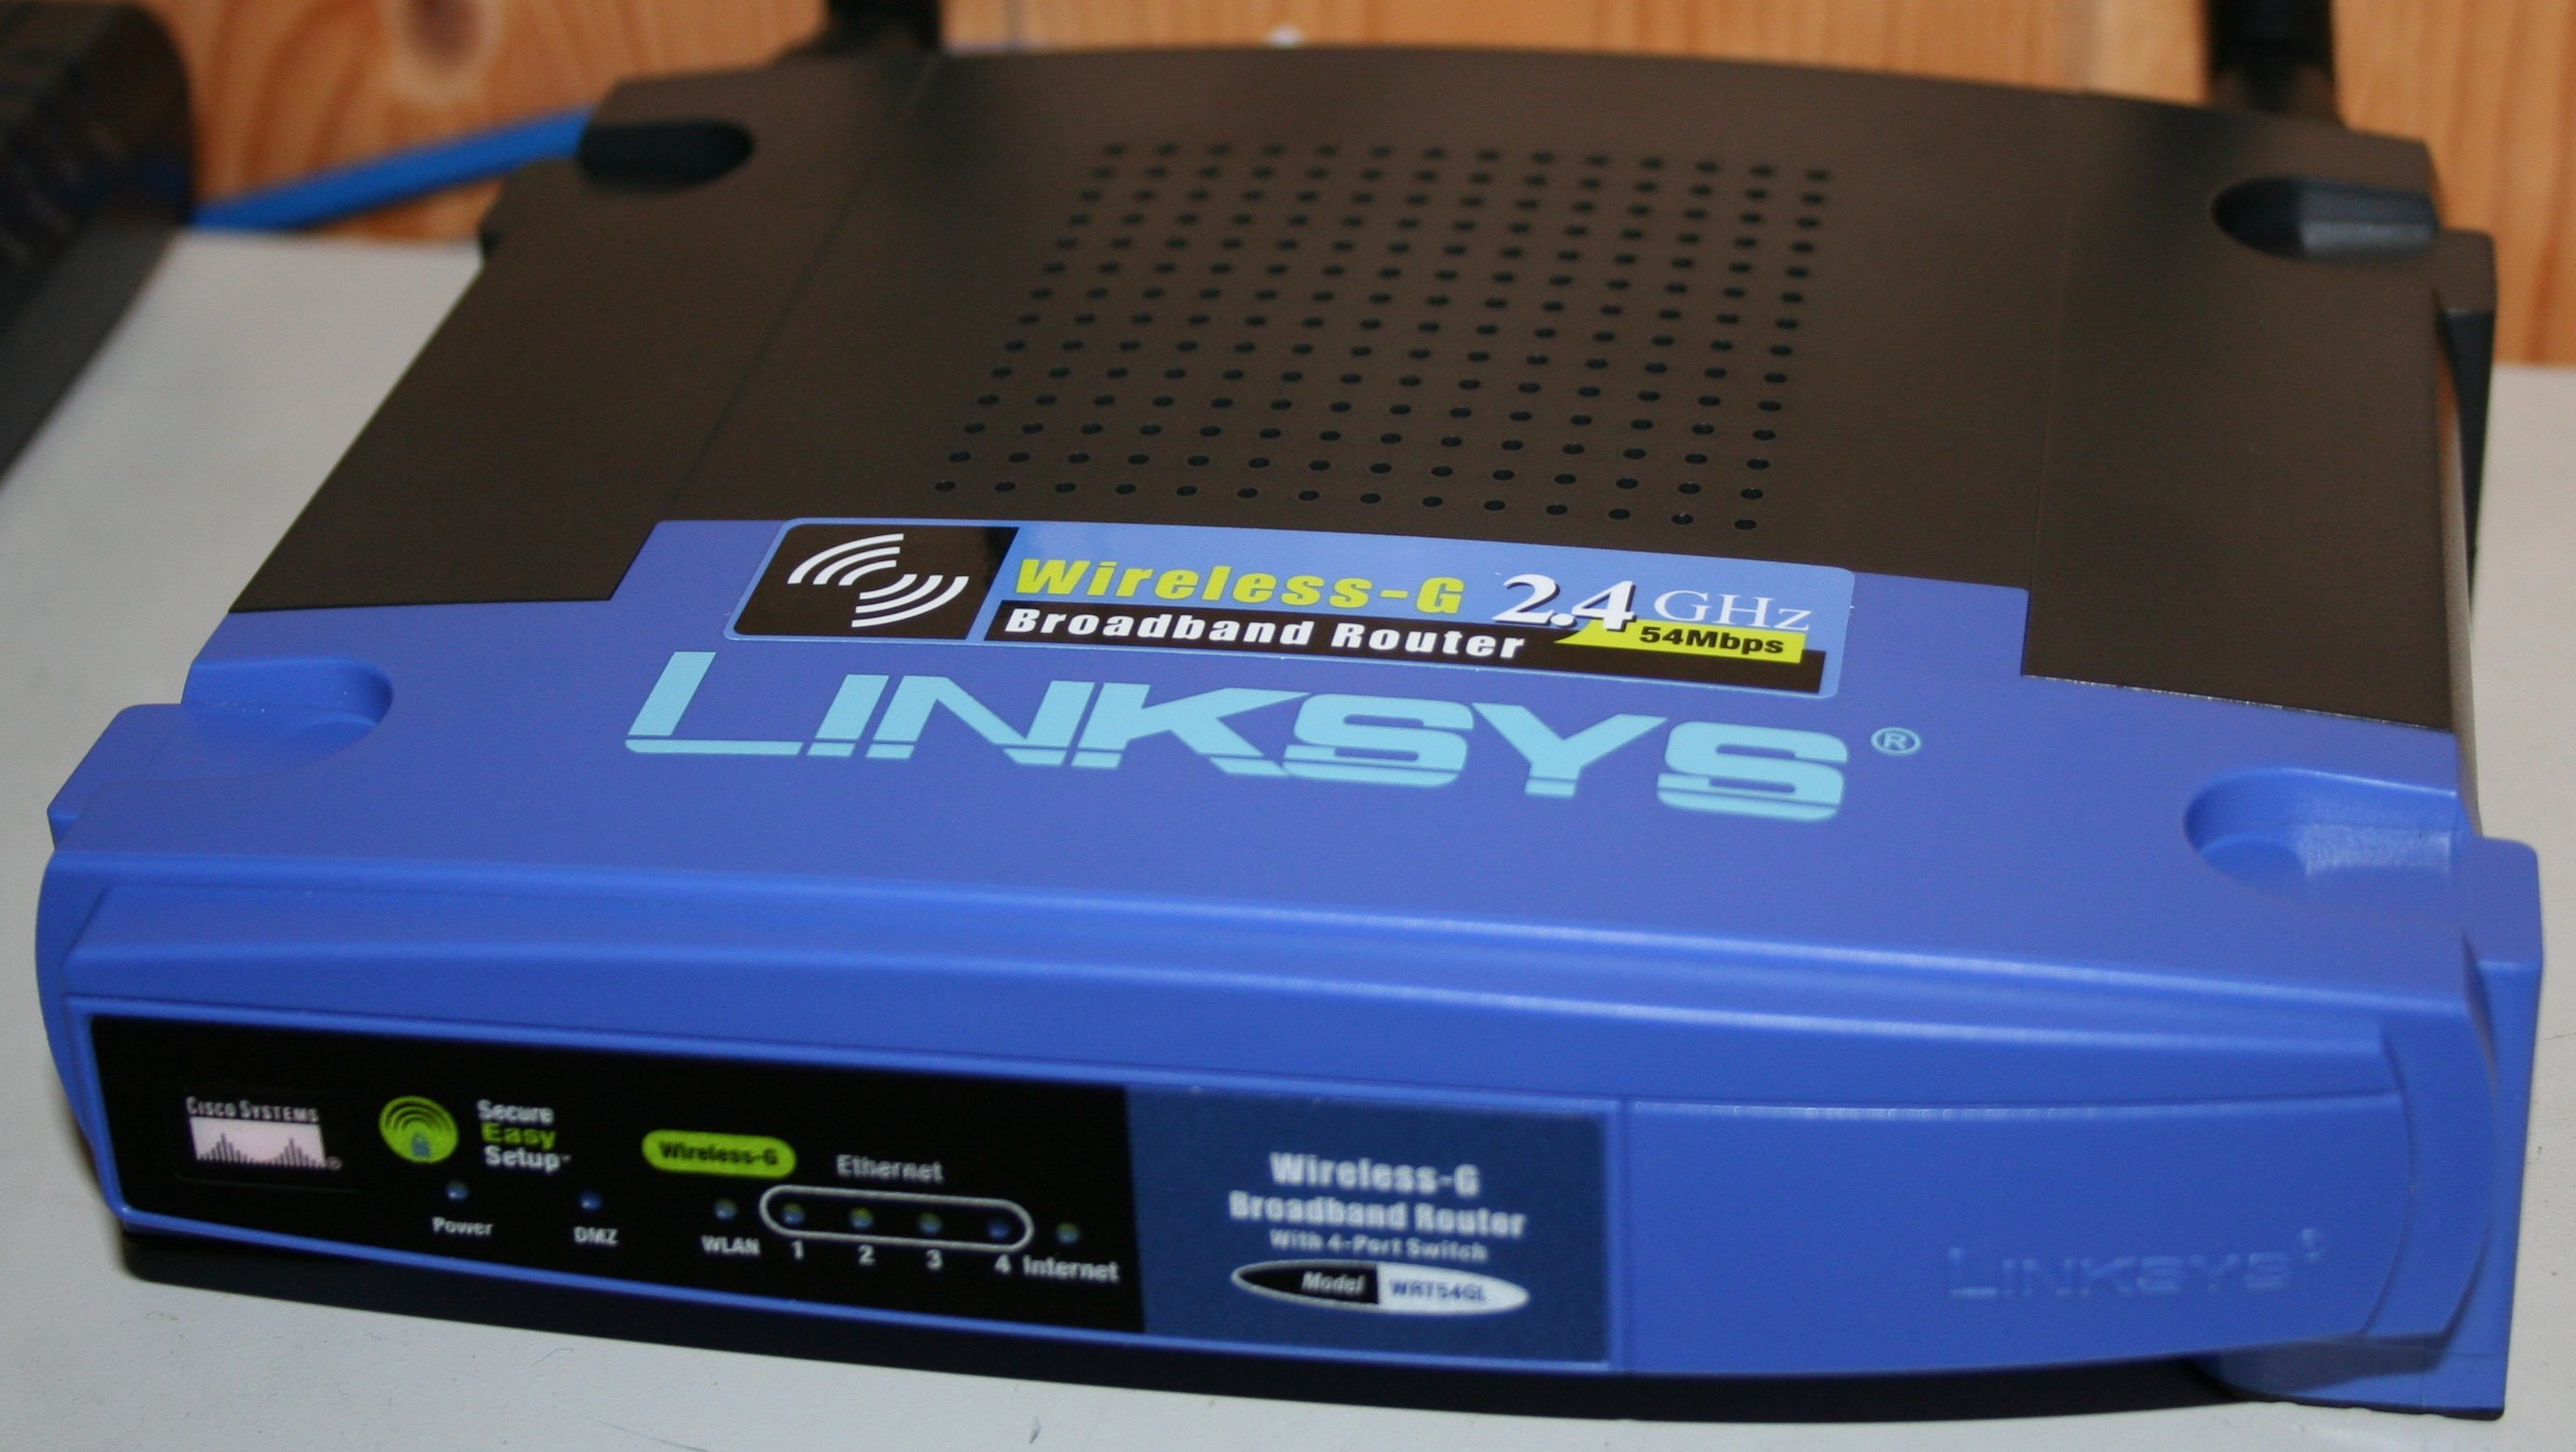 Which Wireless Router is better - Linksys (Cisco) vs